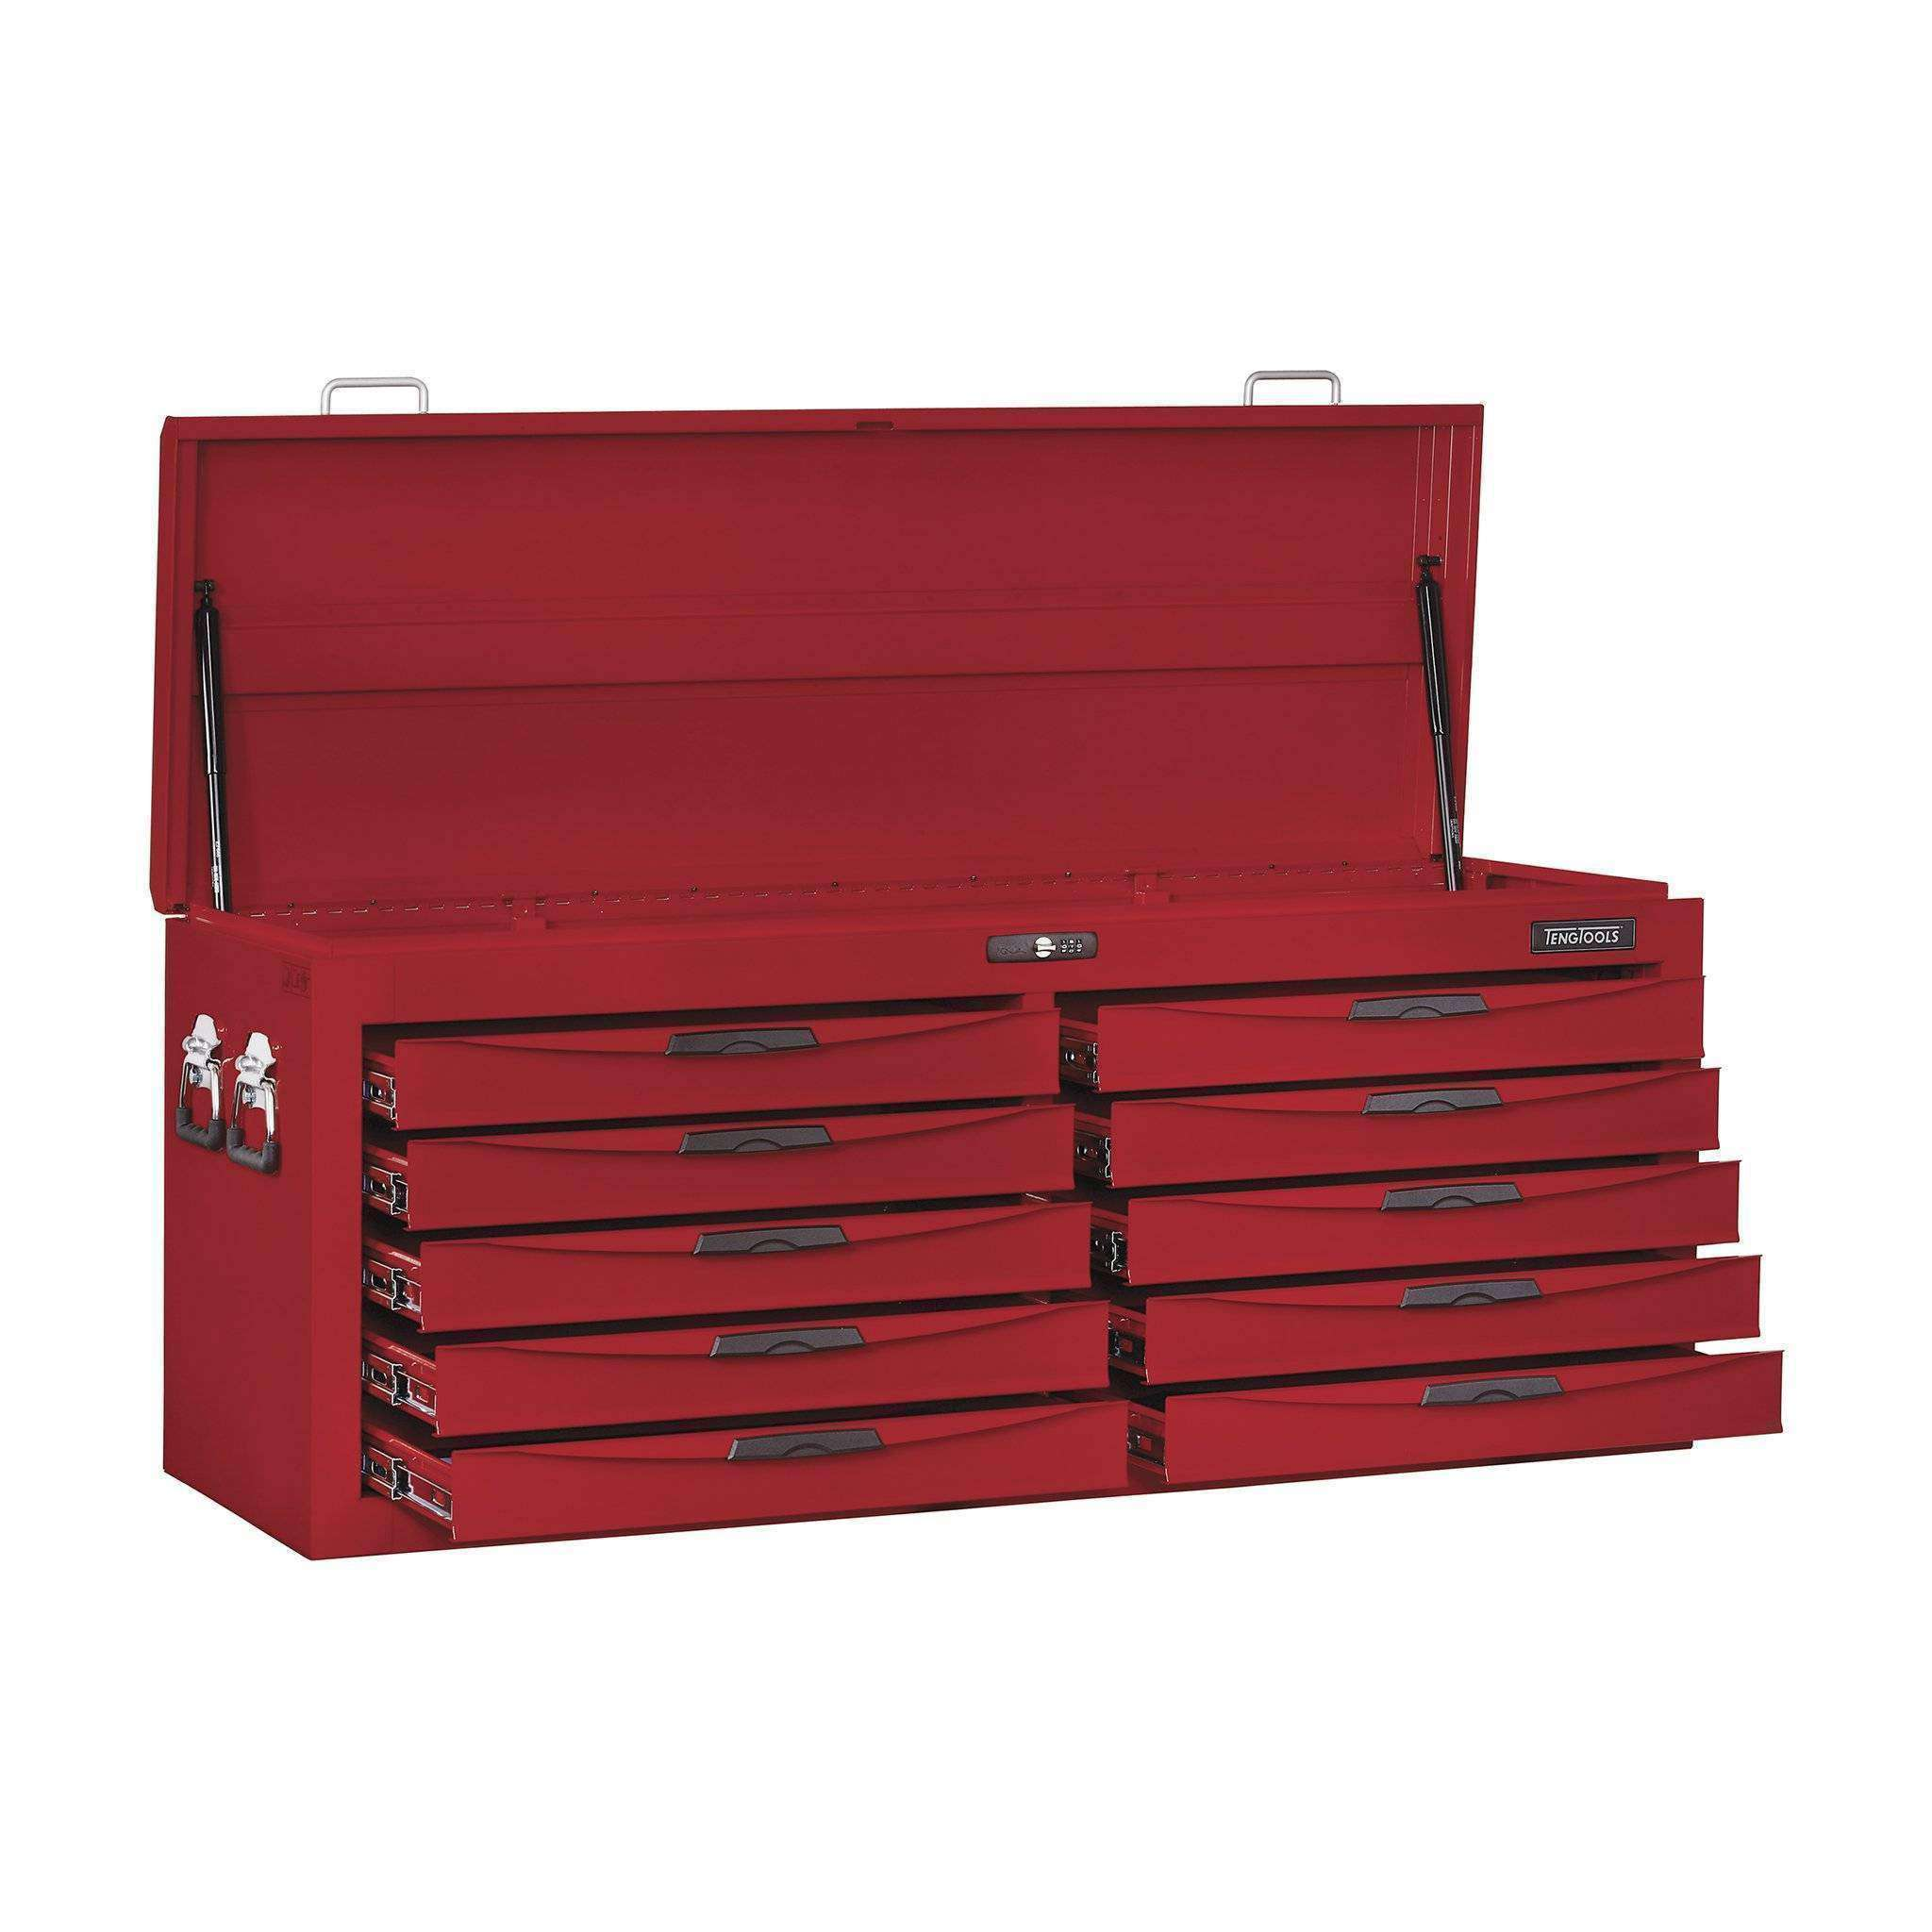 Teng Tools TC810N - 53 Inch Wide 10 Drawer 8 Series Top Box - Teng Tools USA